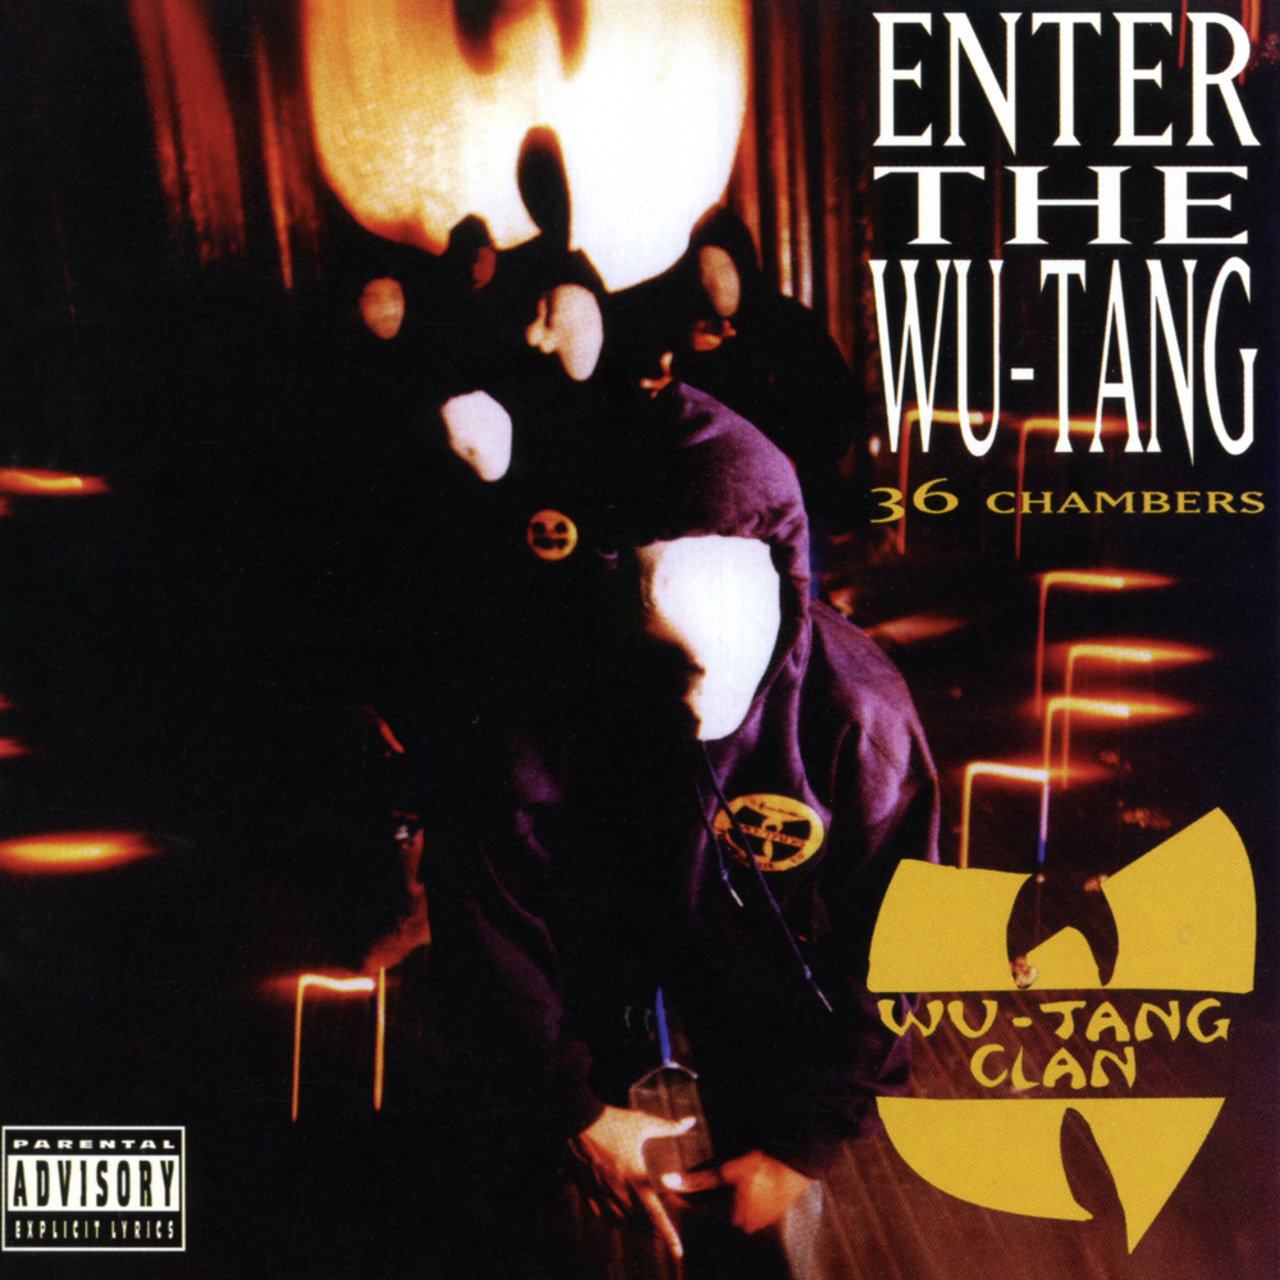 Enter the Wu-Tang (36 Chambers) LP sleeve